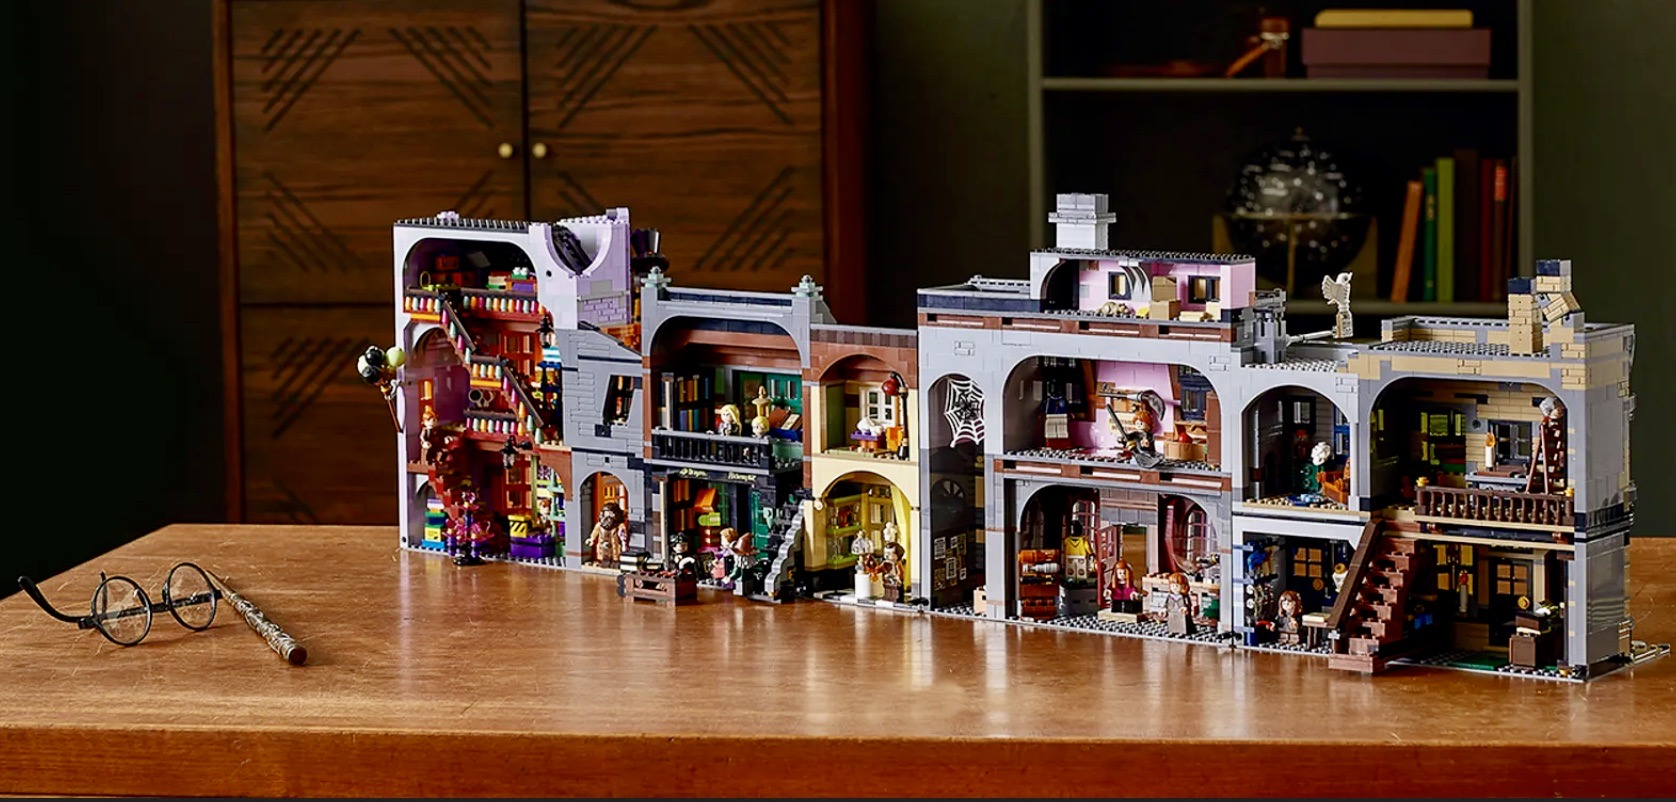 Lego Diagon Alley set, Lego, Diagon Alley, Harry Potter